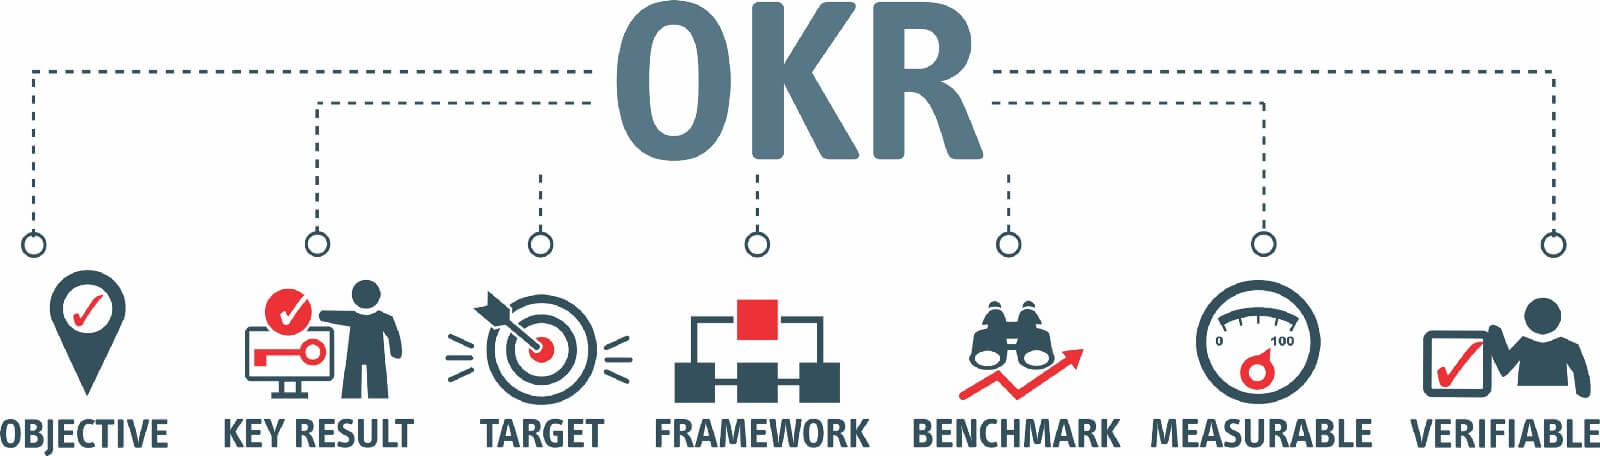 OKR hierarchy with seven components: Objectives, Key Results, Target, Framework, Benchmark, Measurable, Verifiable